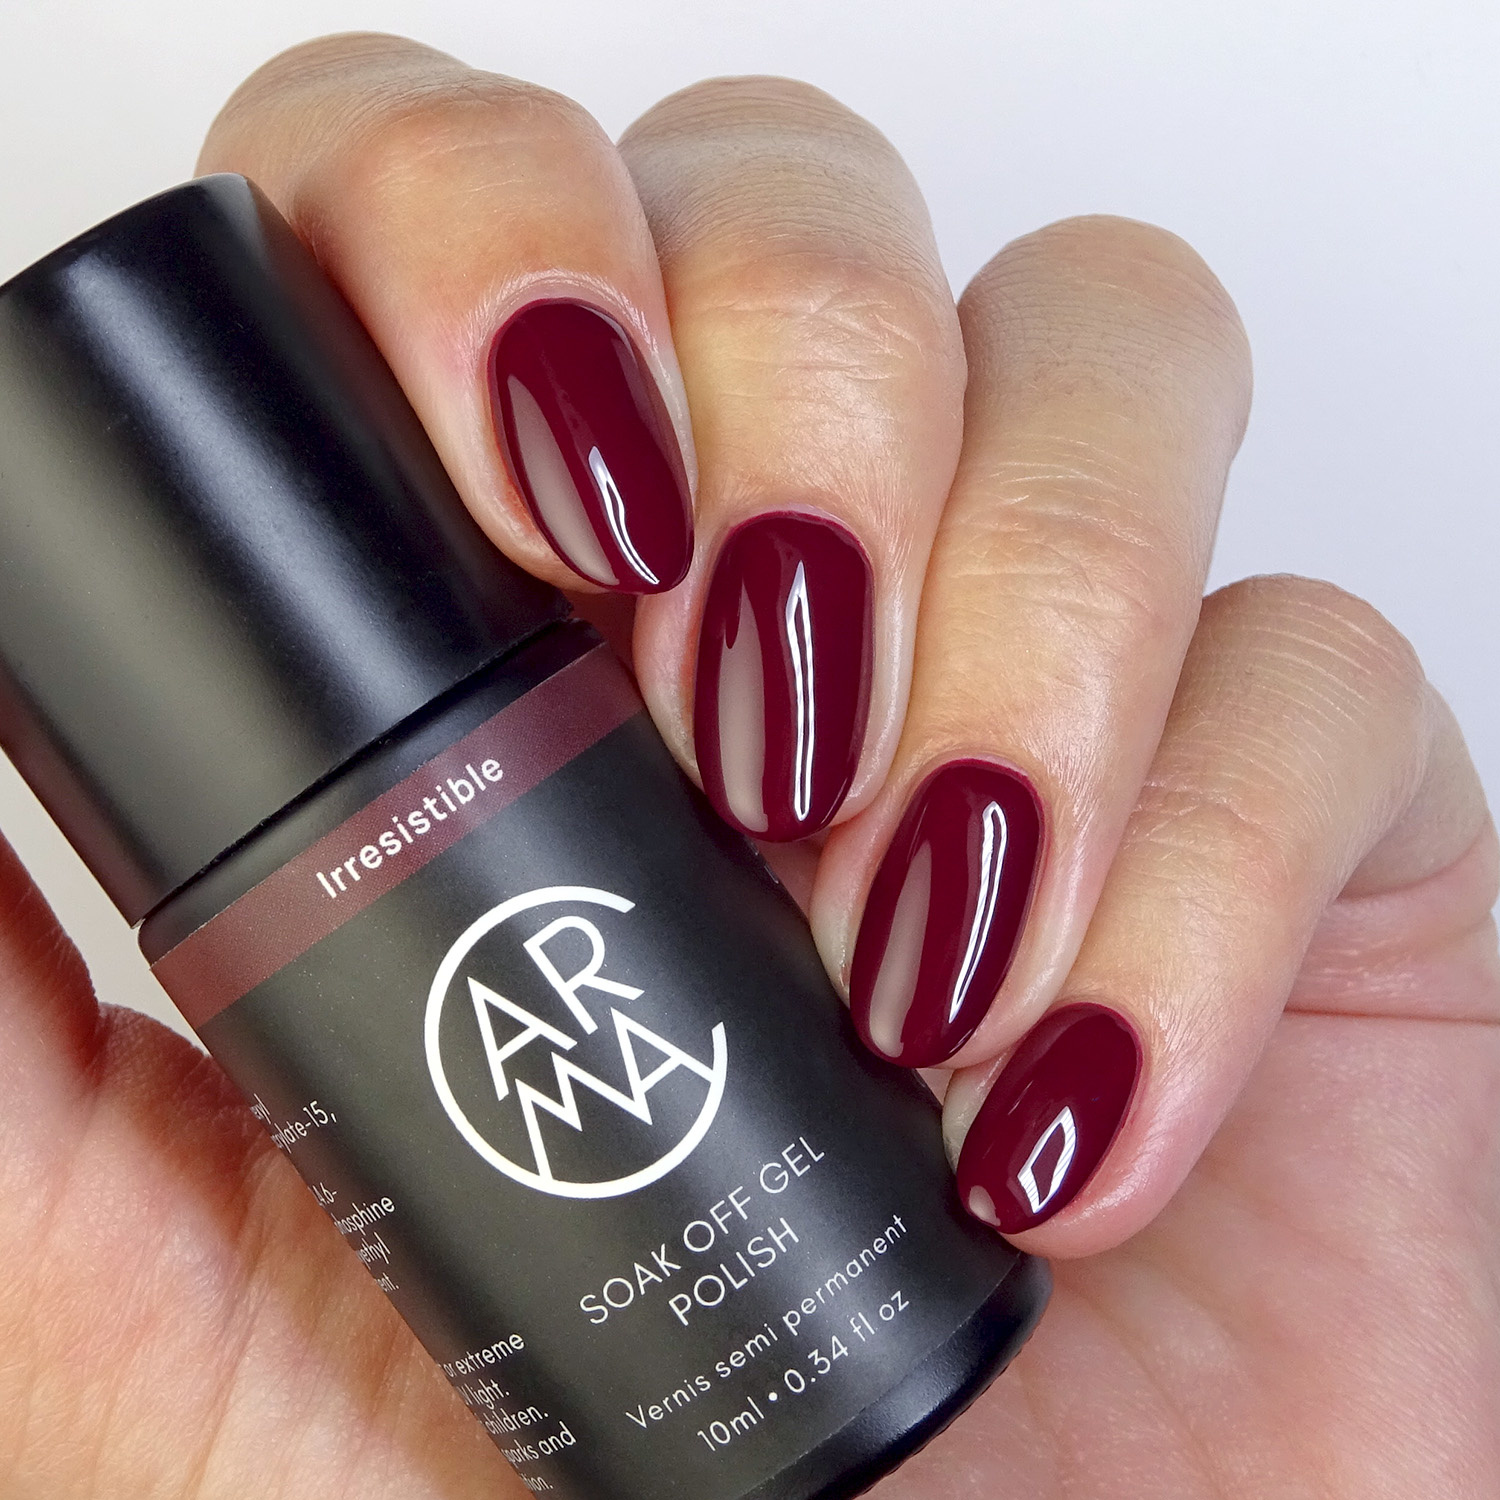 CARMA Irresistible Gel Polish